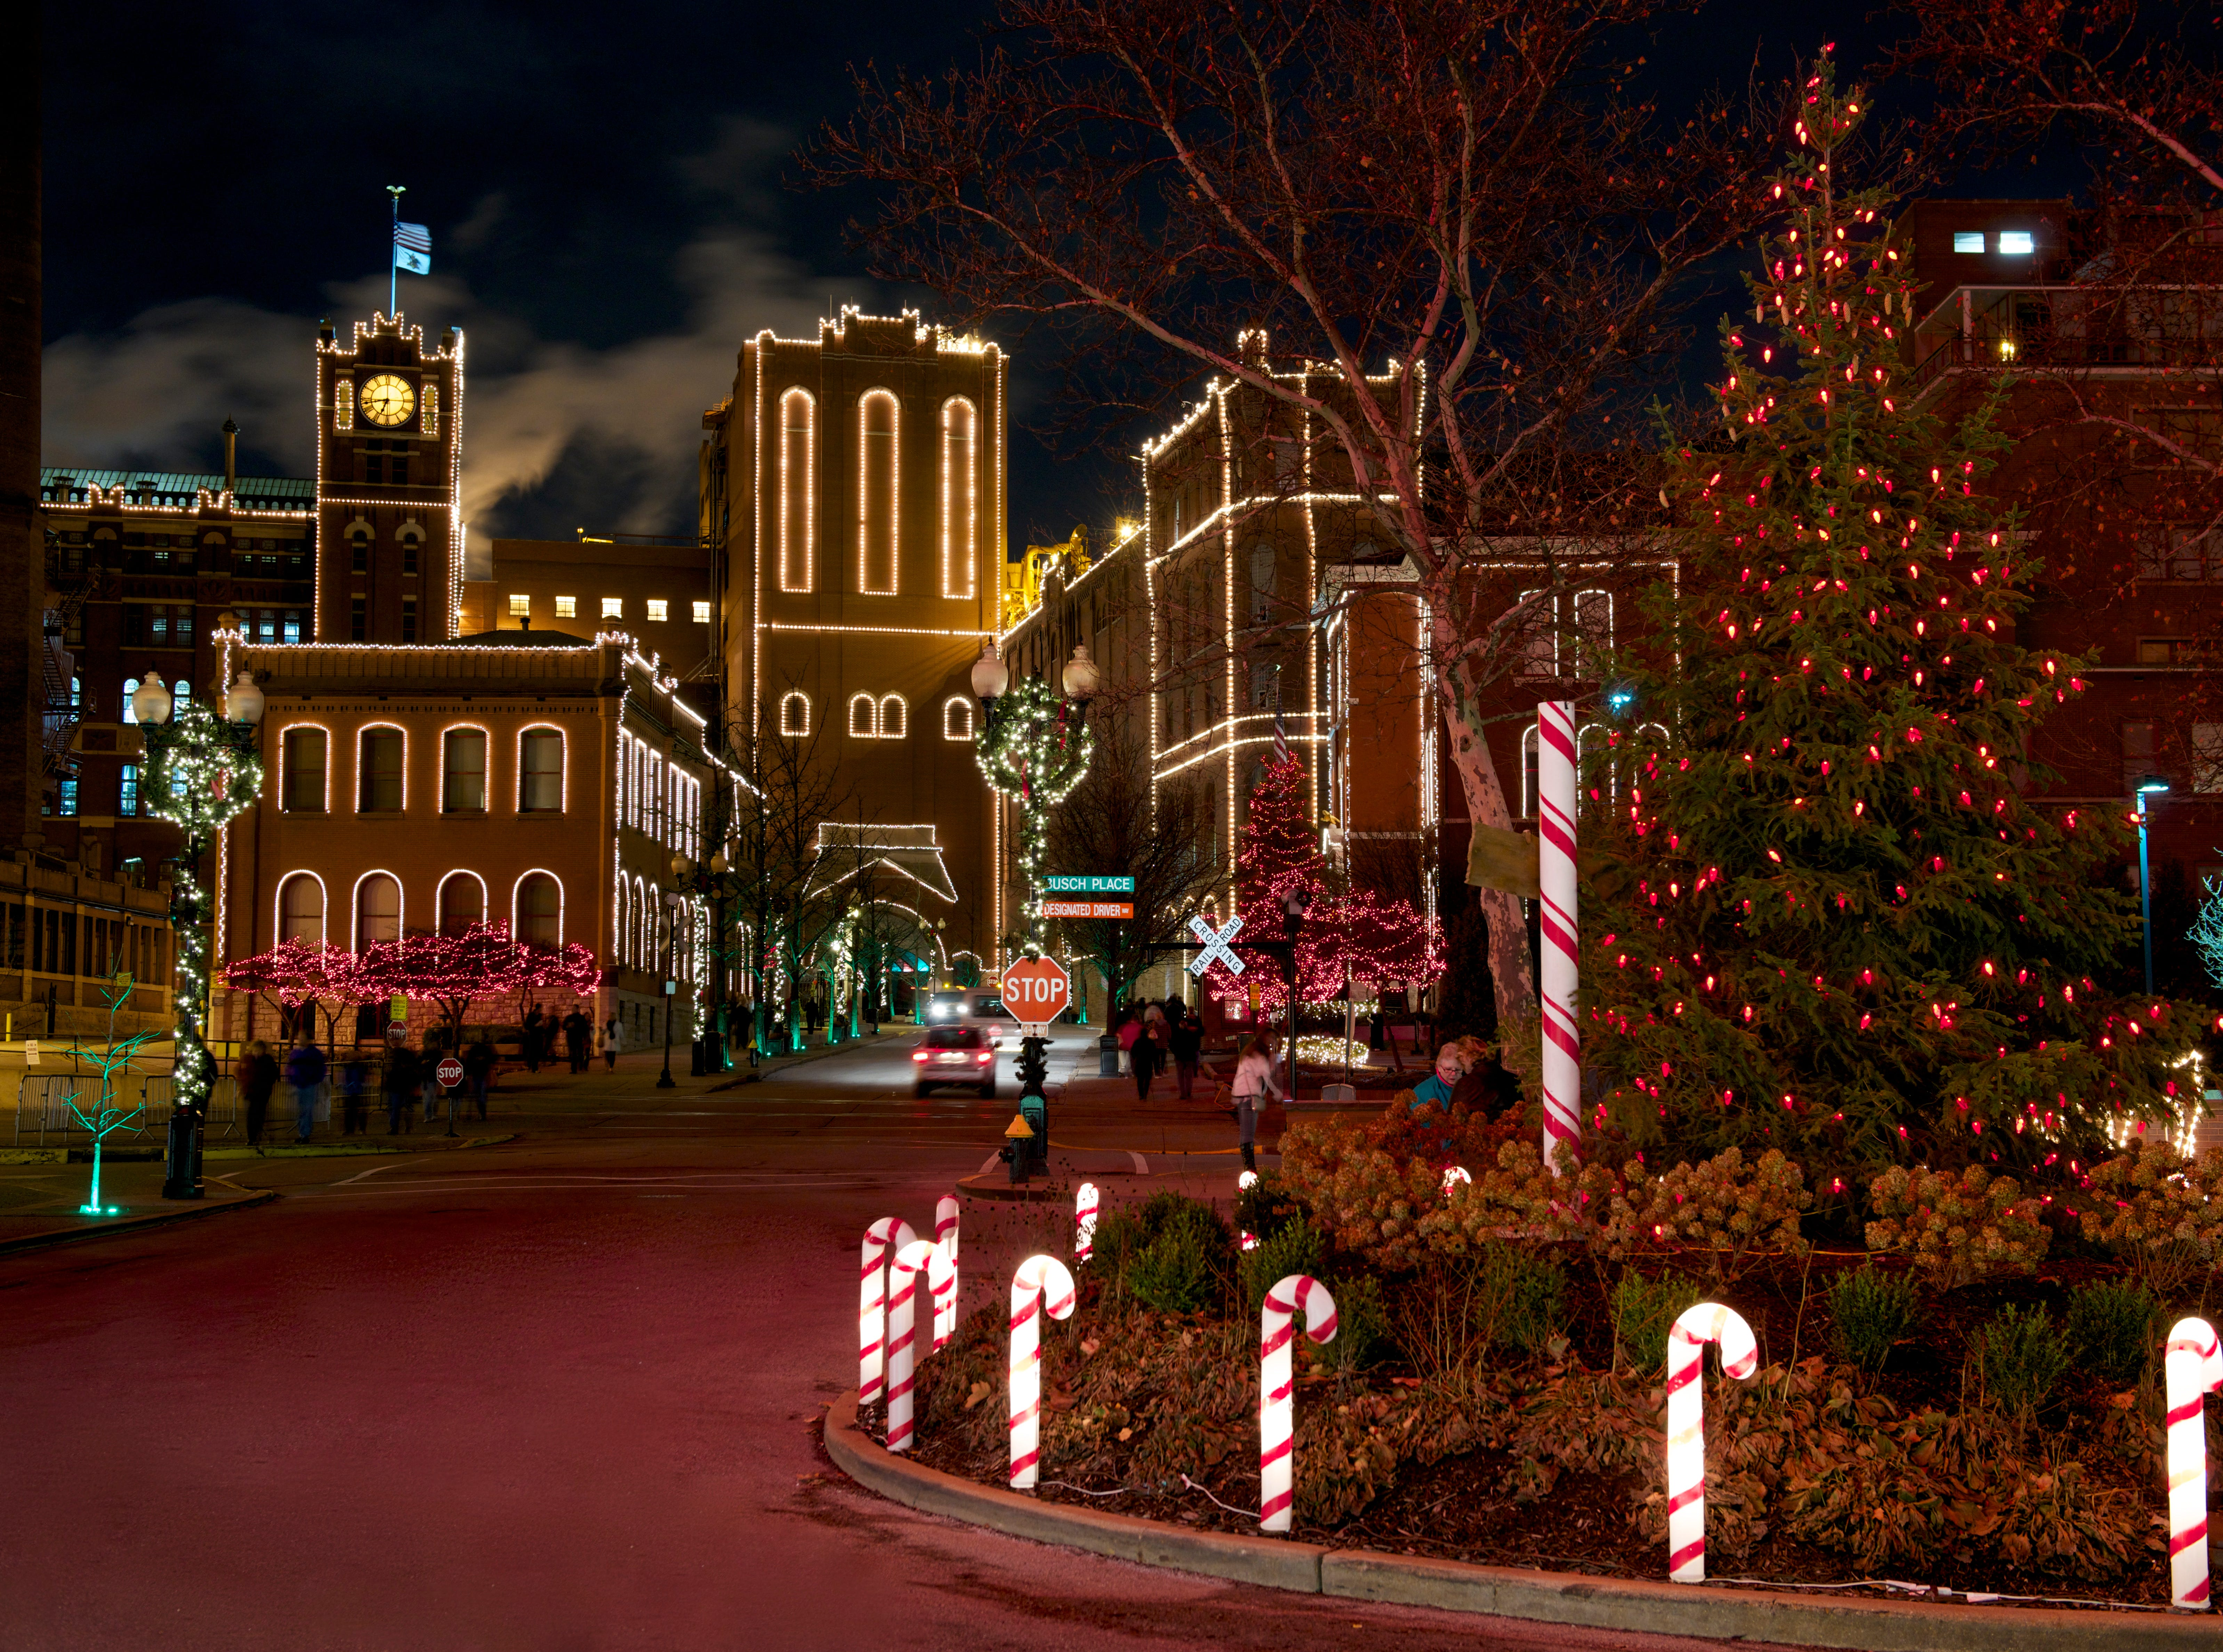 Anheuser-Busch holiday lights in St. Louis.